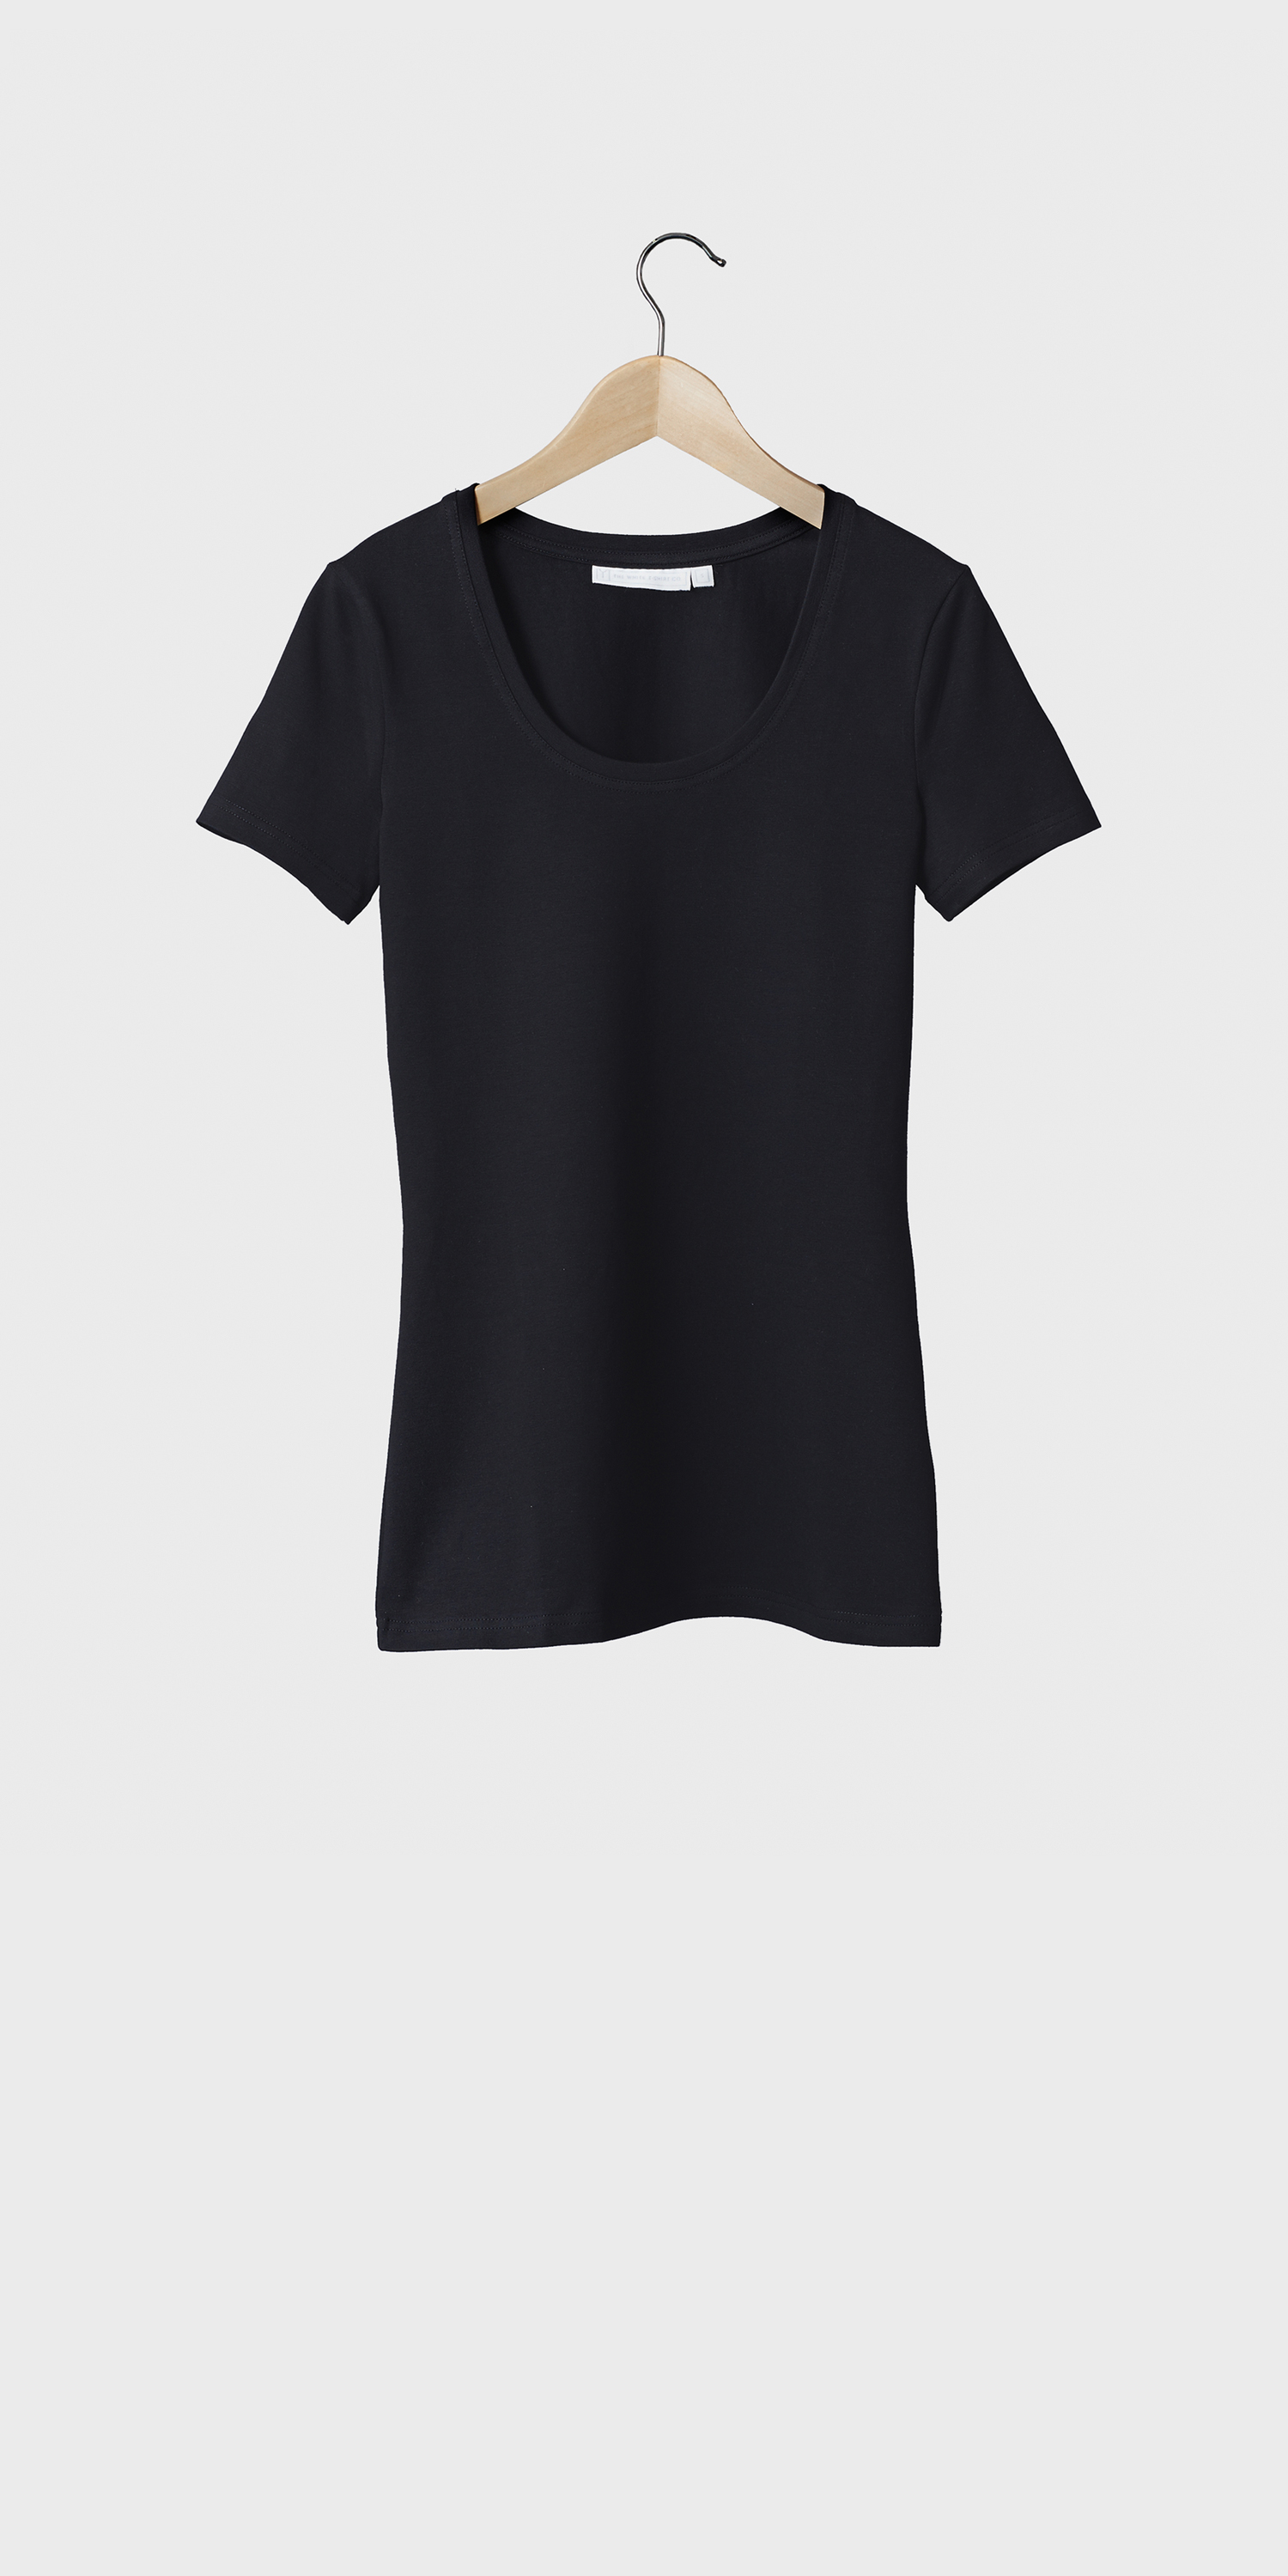 womens black tshirt short sleeved scoop neck fitted